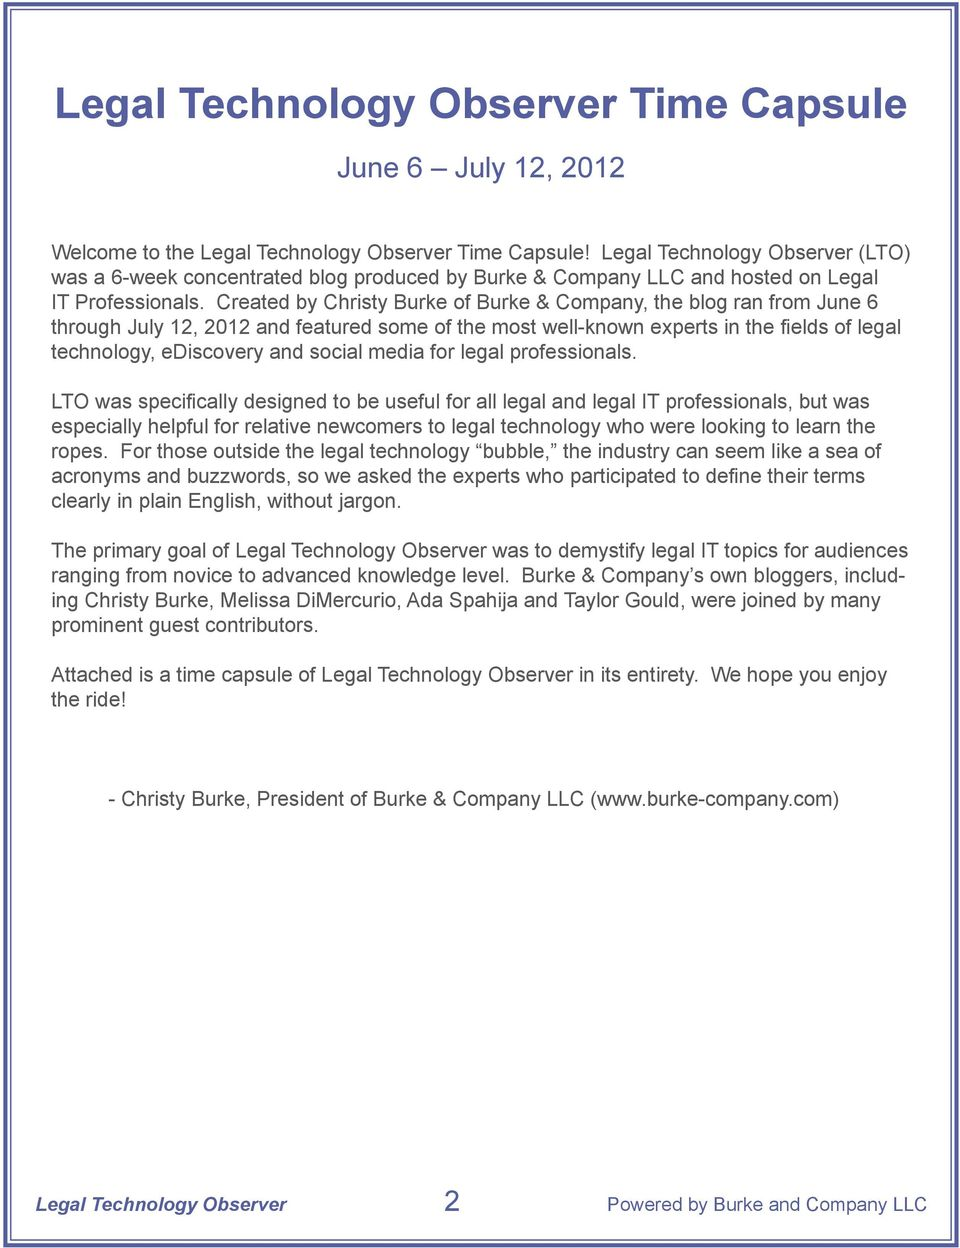 Created by Christy Burke of Burke & Company, the blog ran from June 6 through July 12, 2012 and featured some of the most well-known experts in the fields of legal technology, ediscovery and social